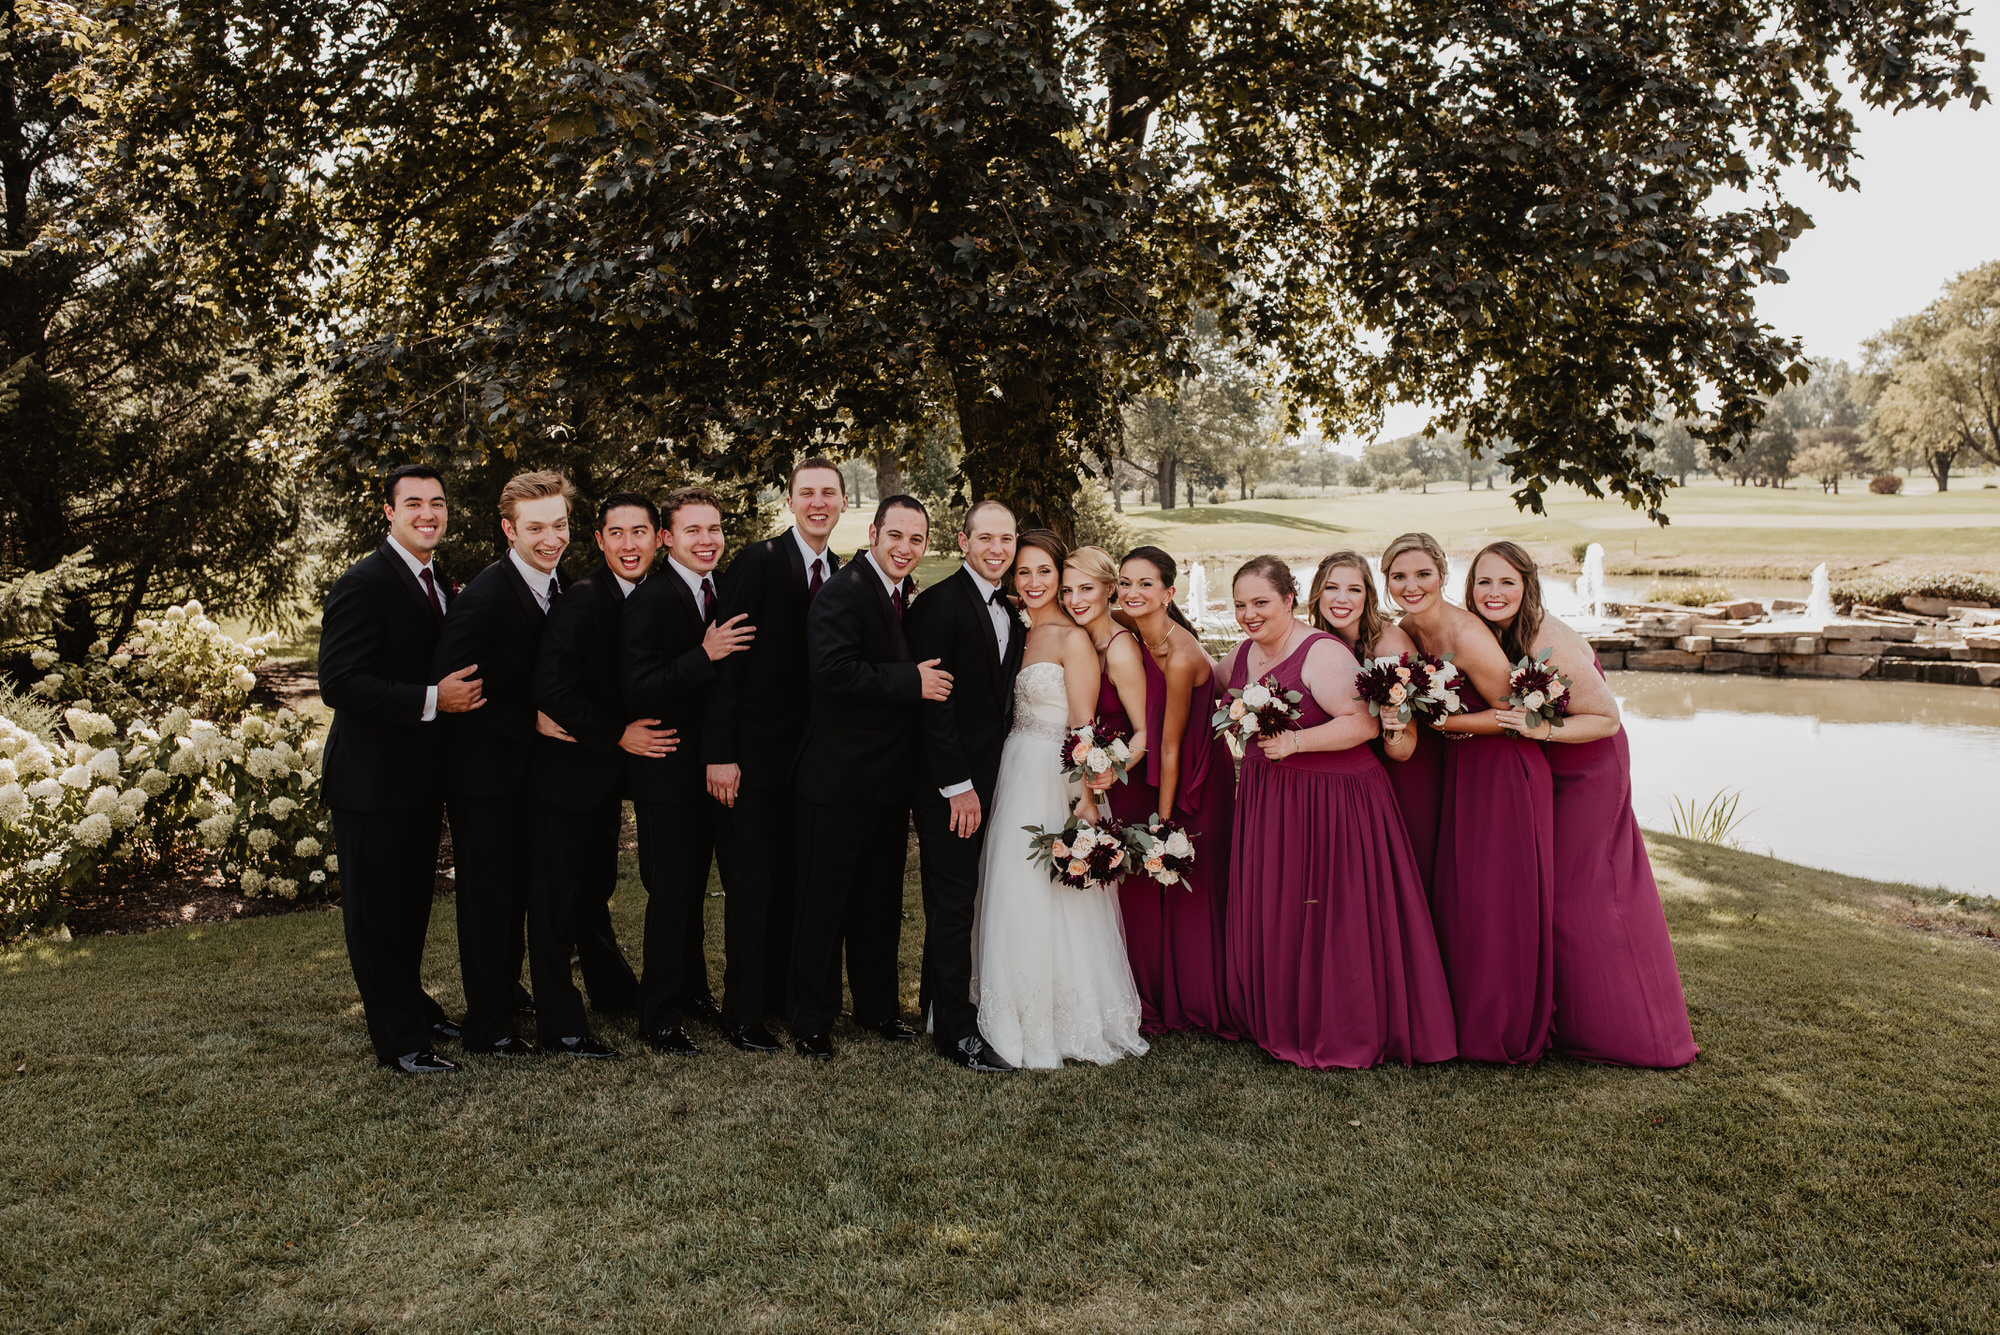 Chevy-Chase-Country-Club-Wedding-Chicago-Illinois-042.jpg